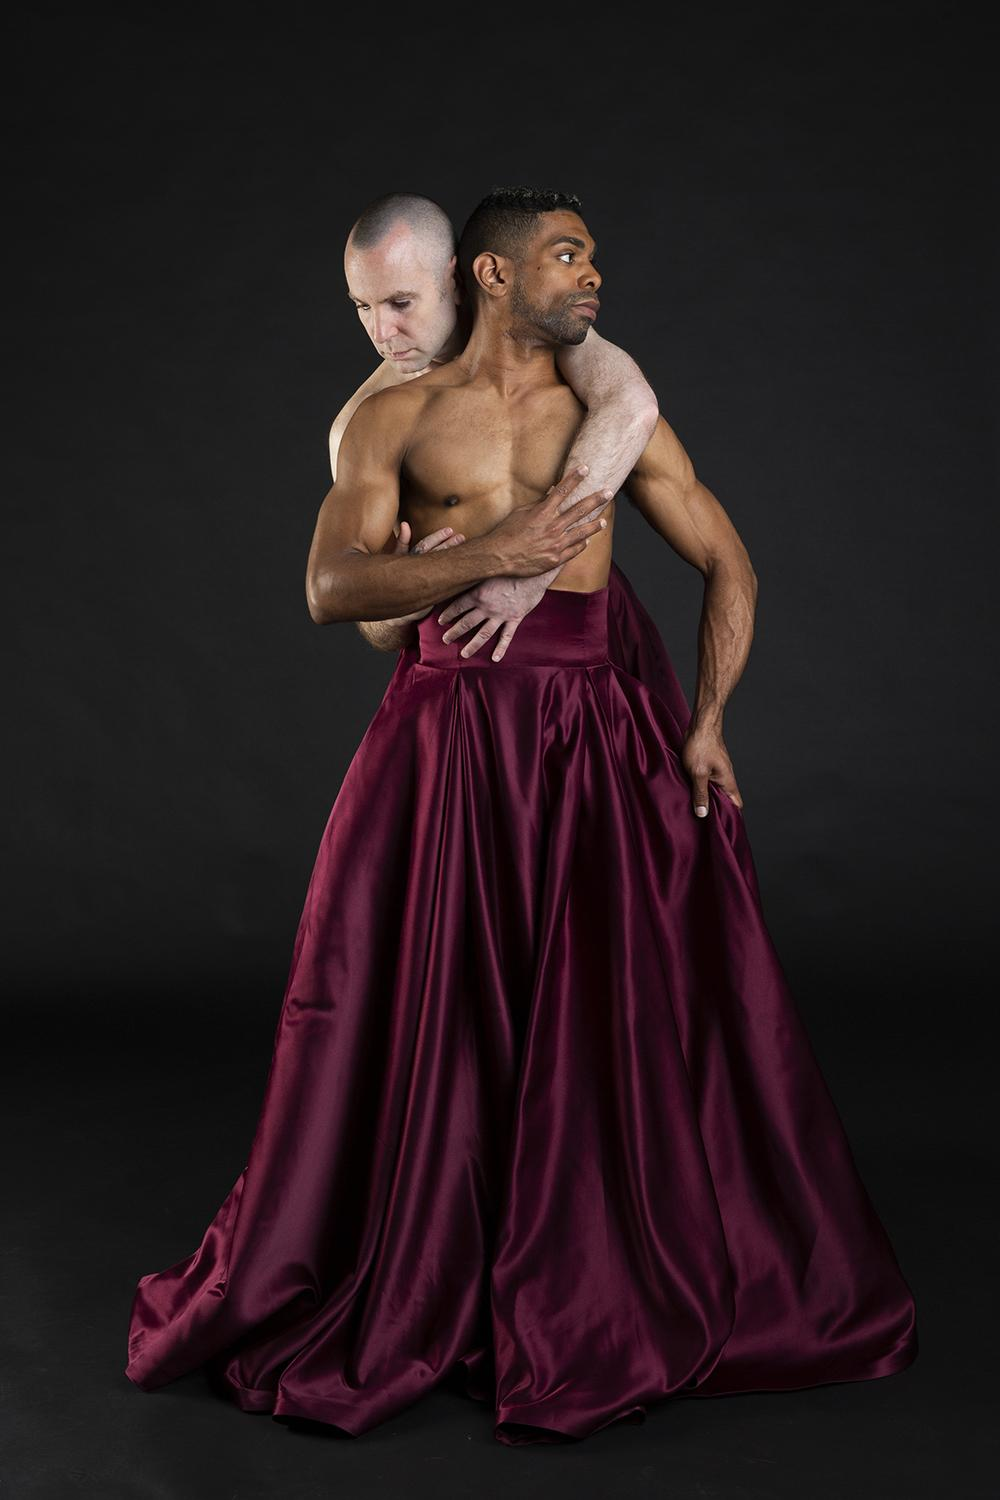 Two men caress; one of the men wears a long maroon skirt.